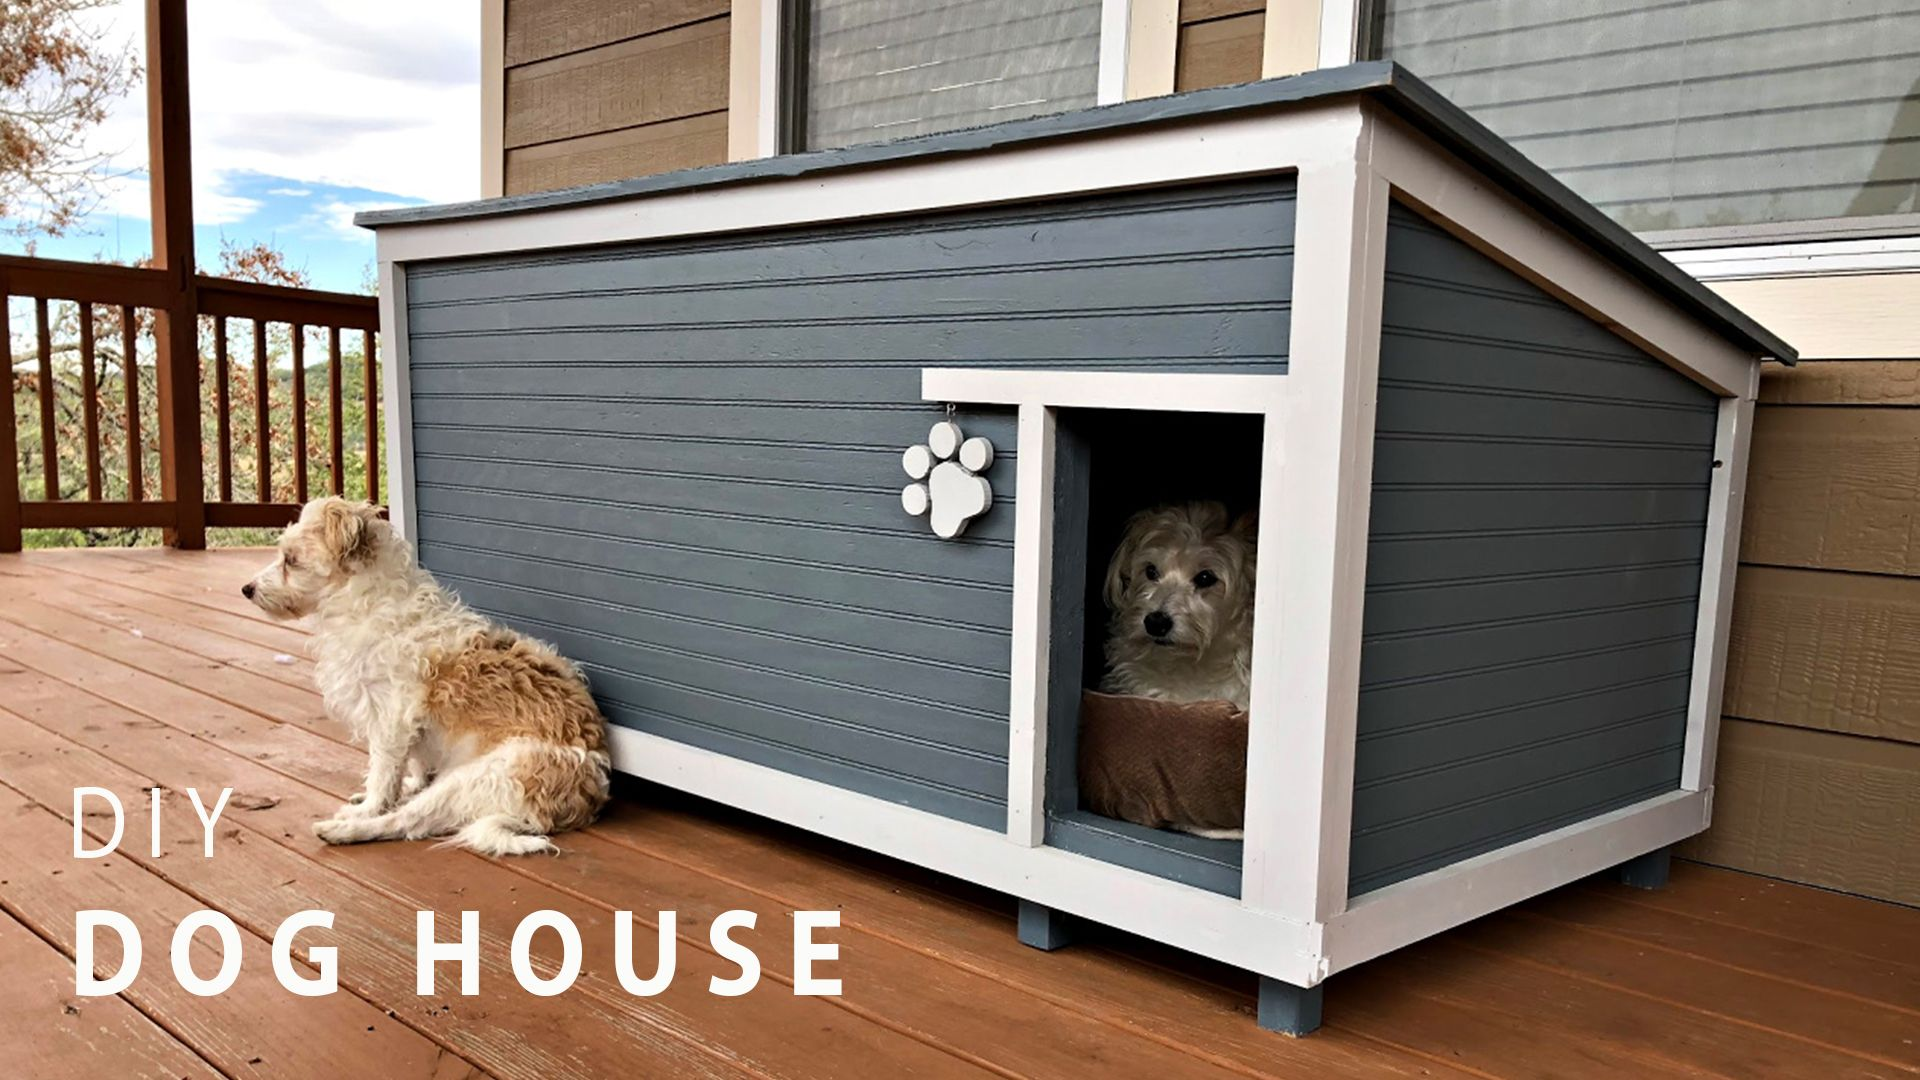 Diy Insulated Dog House Wilker Do S Insulated Dog House Large Dog House Dog House Plans